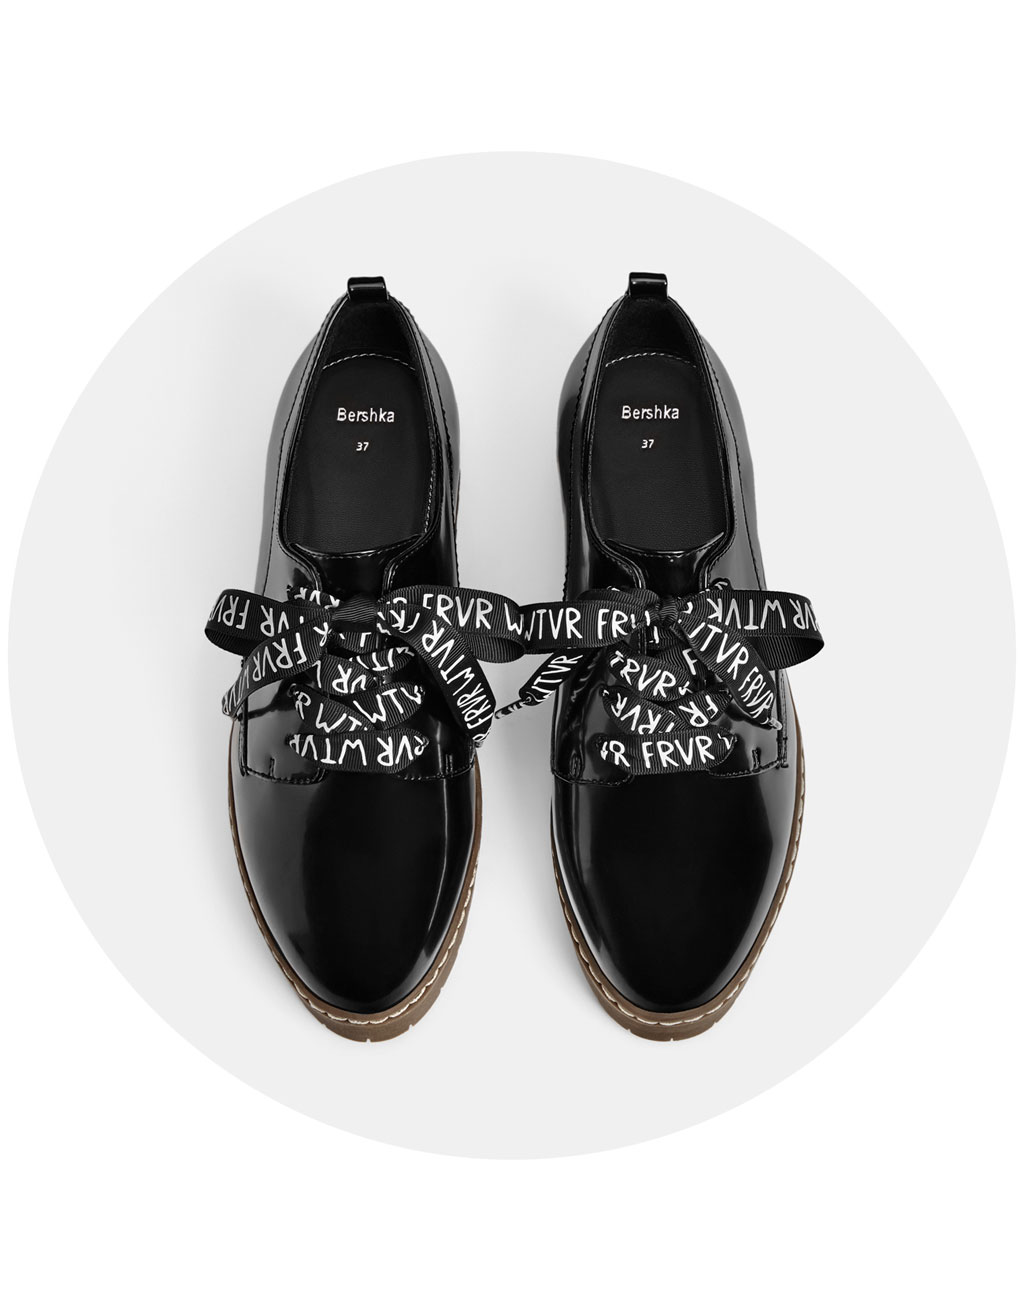 Faux patent leather platform derby shoes with slogan print laces